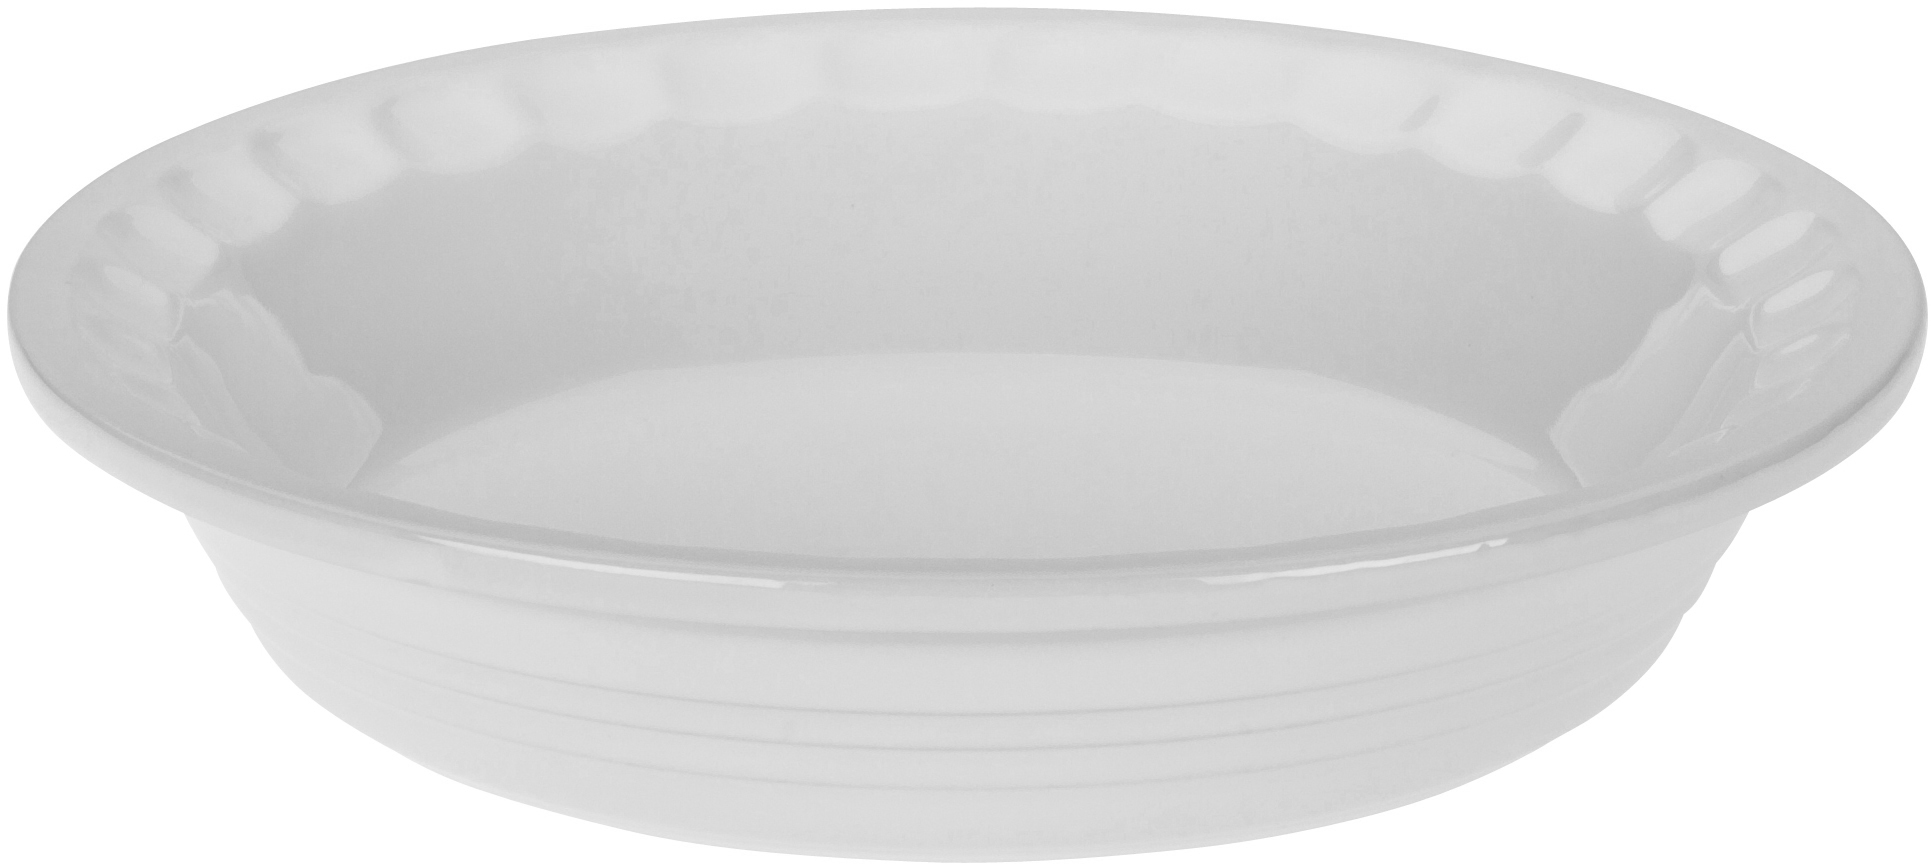 Le Creuset Heritage White Stoneware Pie Pan, 5 Inch